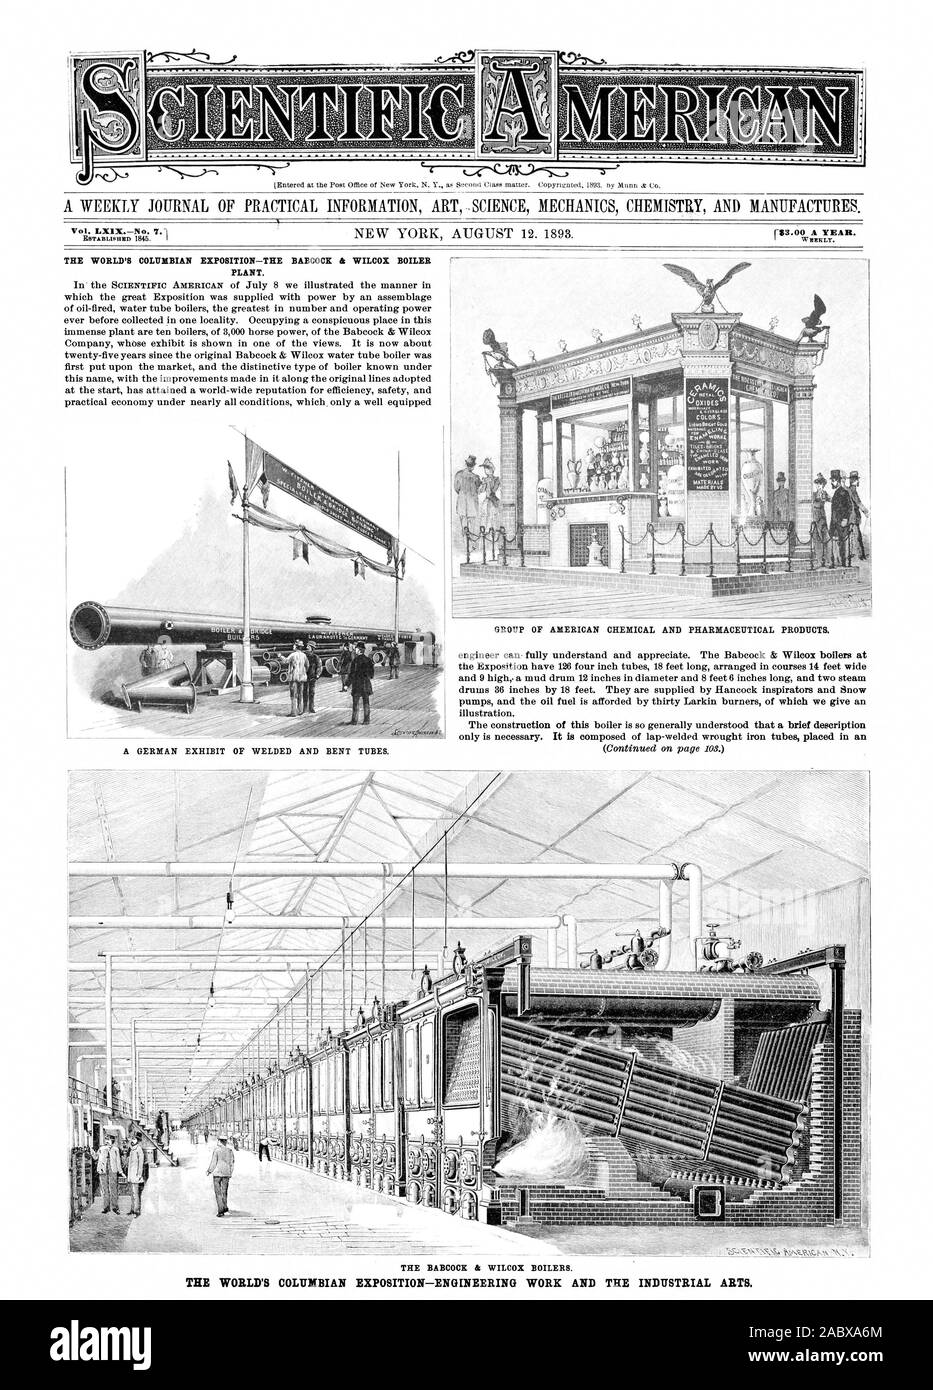 A WEEKLY JOURNAL OF PRACTICAL INFORMATION ART .SCIENCE MECHANICS CHEMISTRY AND MANUFACTURES. IOM THE BABCOCK & WILCOX BOILERS. THE WORLD'S COLUMBIAN EXPOSITION—ENGINEERING WORK AND THE INDUSTRIAL ARTS., scientific american, 1893-08-12 Stock Photo